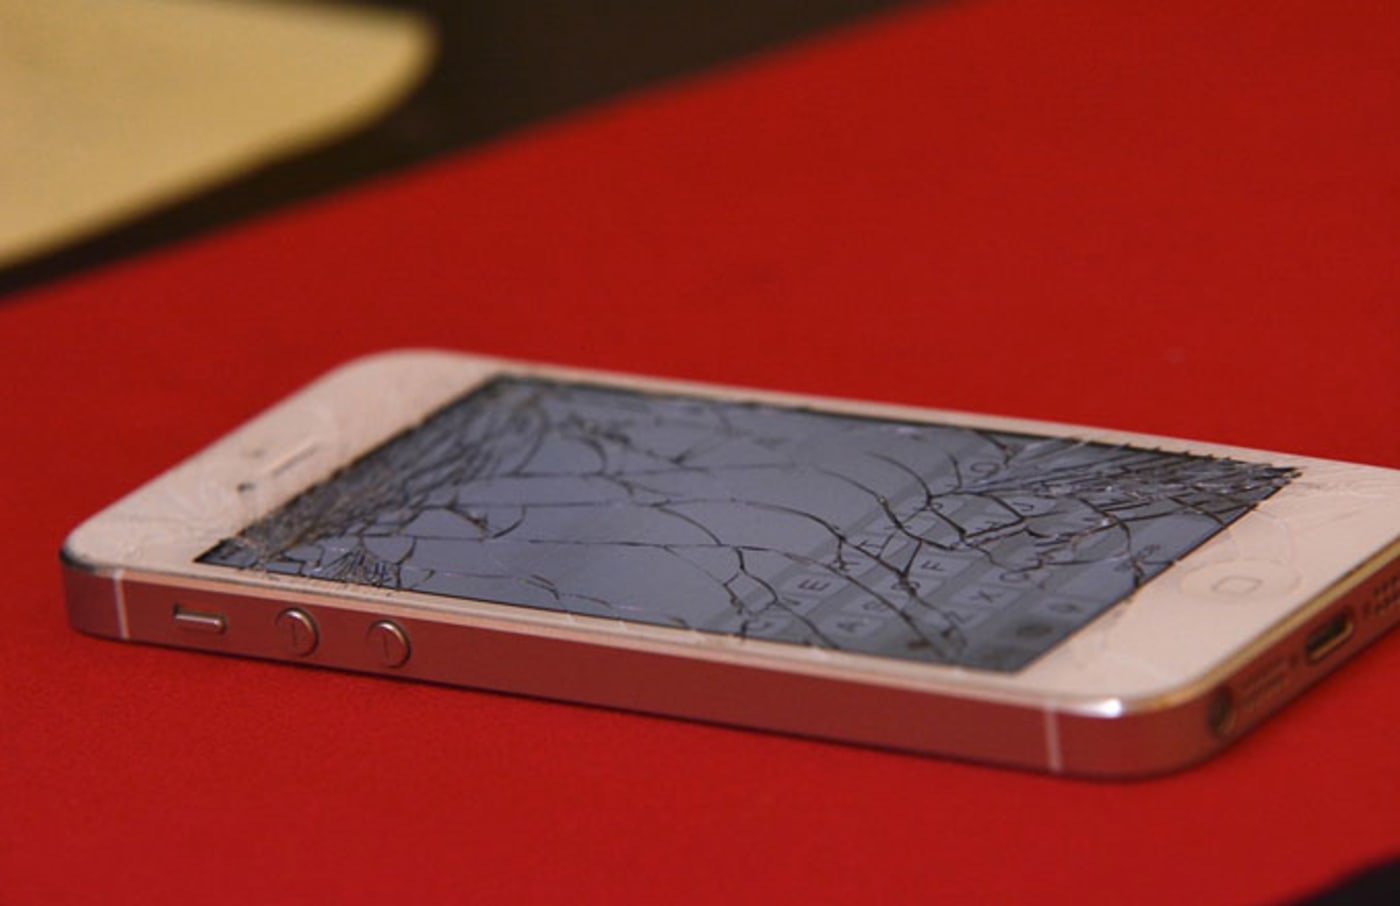 A cracked iPhone.